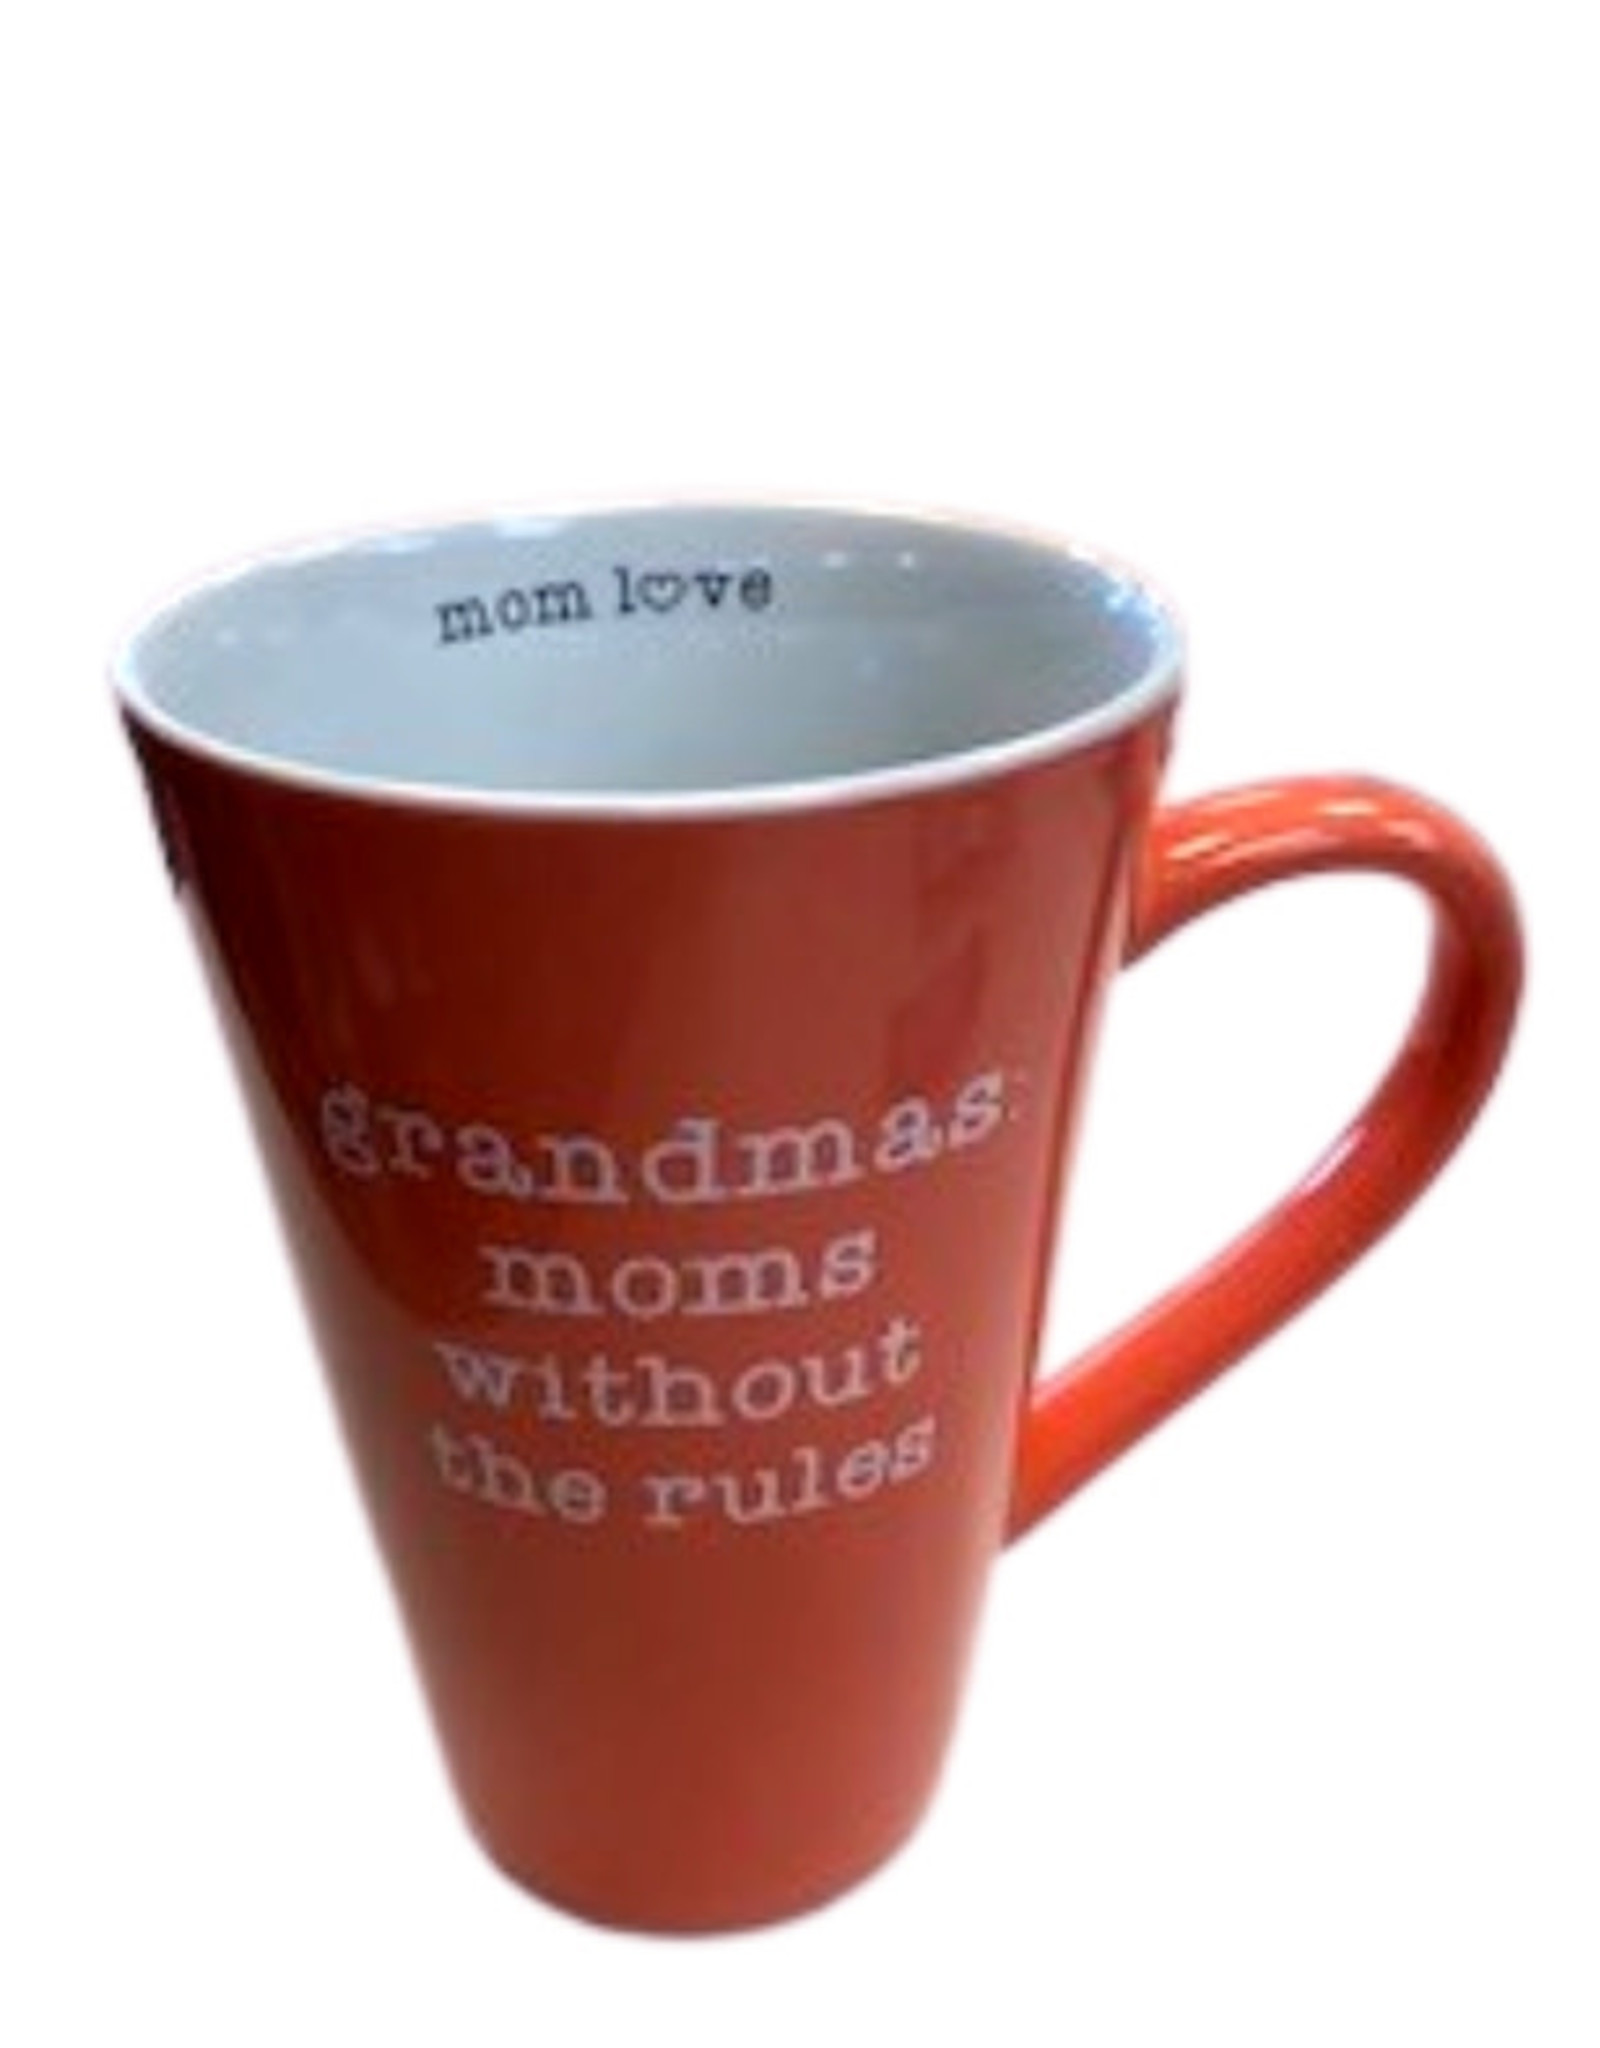 Grandmas: Moms Without the Rules